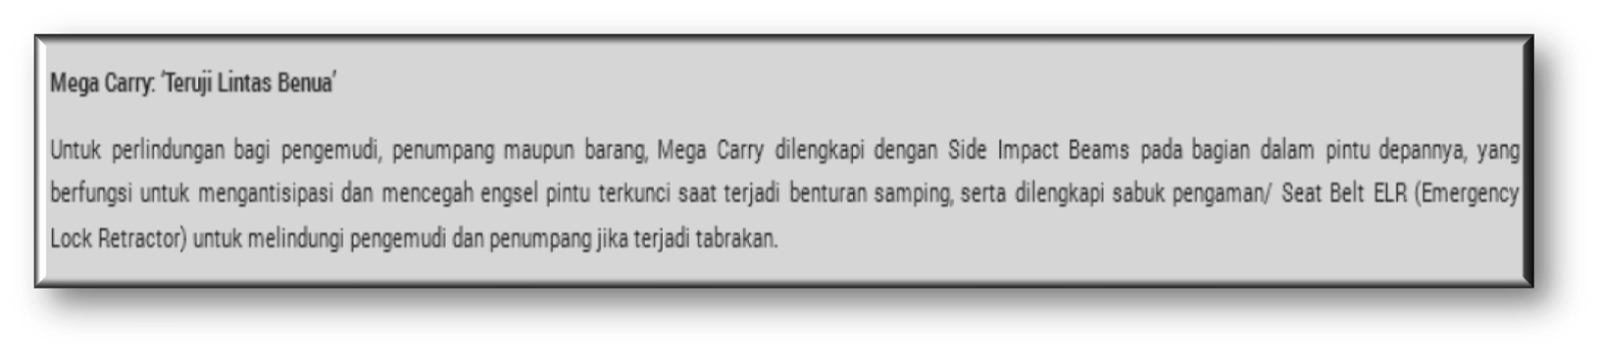 SUZUKI MEGA CARRY SAFETY FEATURE